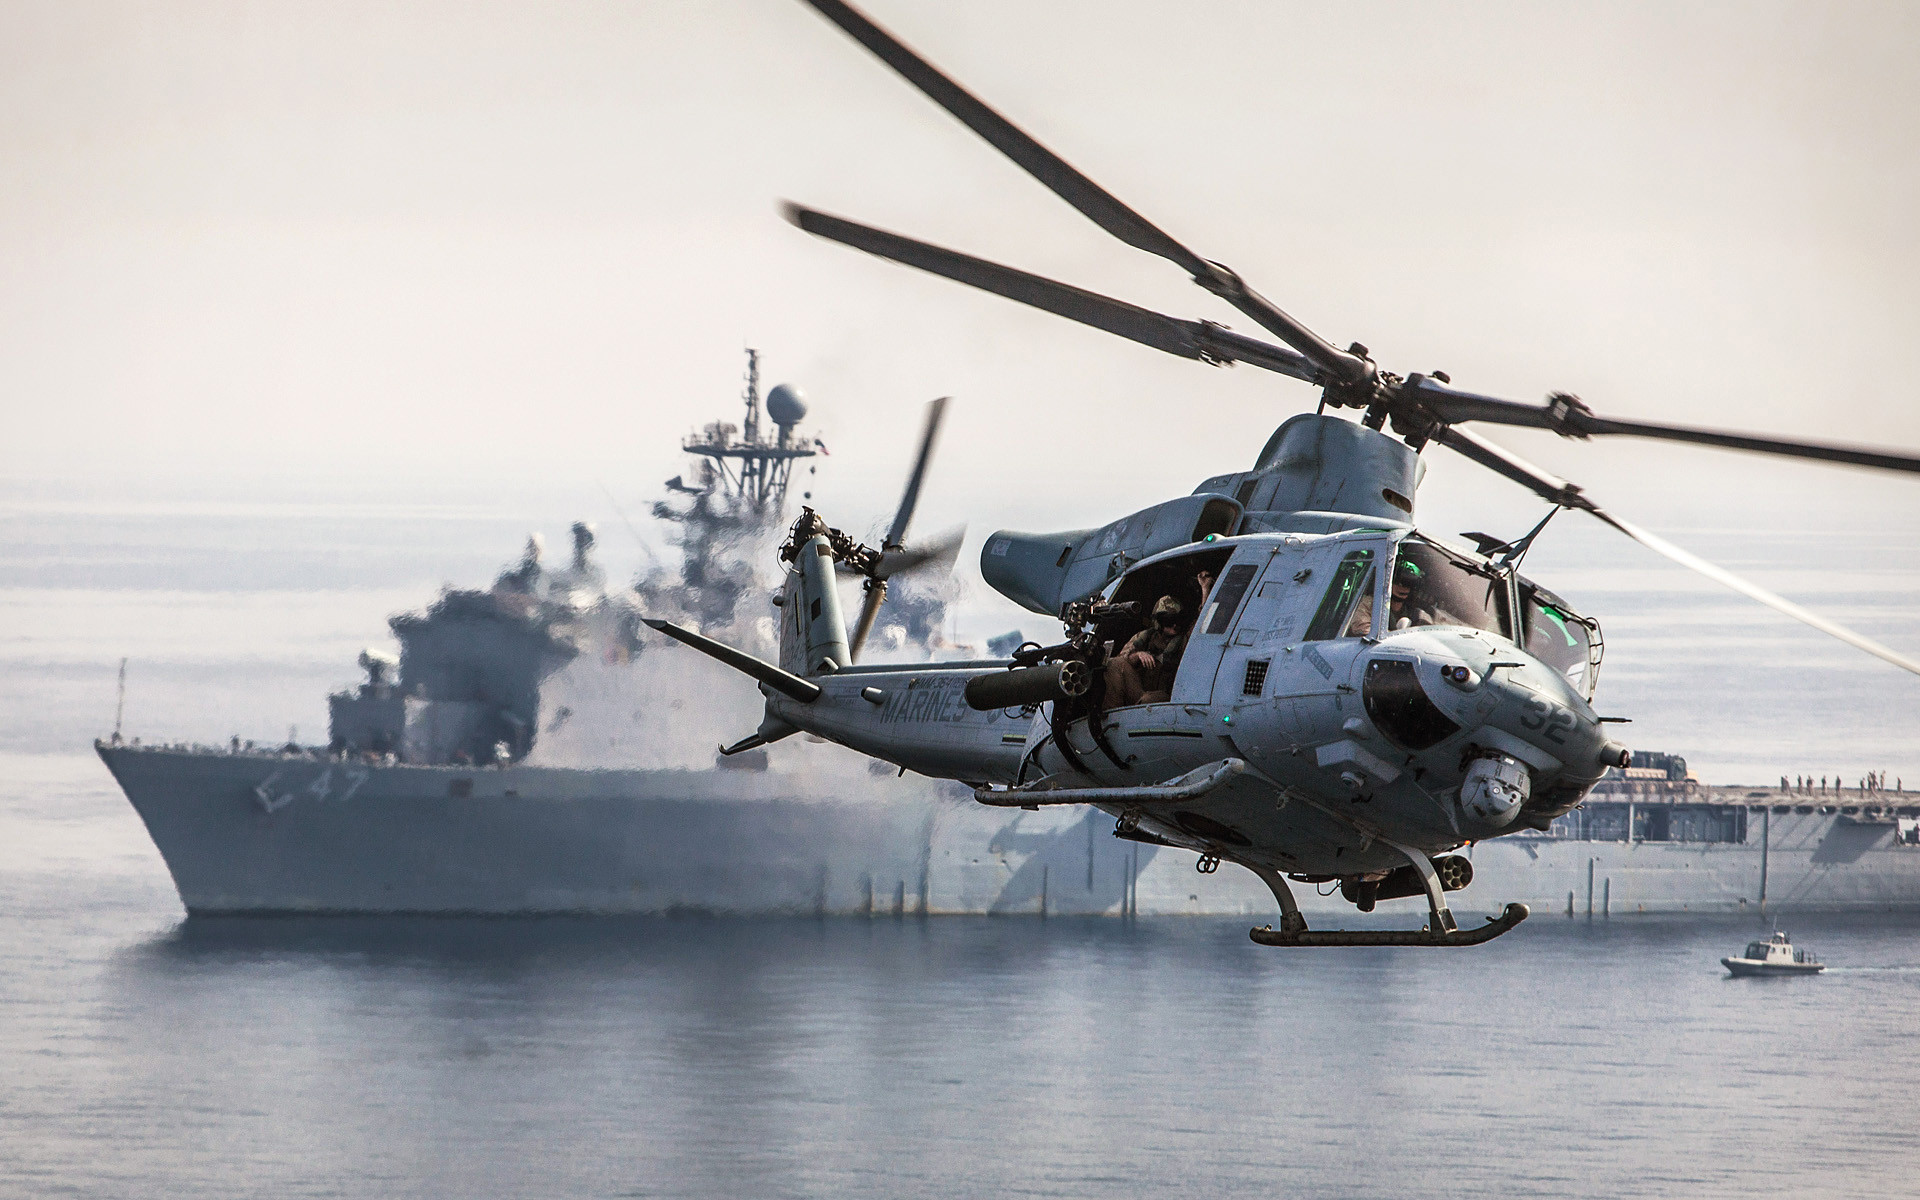 Res: 1920x1200, Helicopter Ships boats ocean sea military wallpaper      71527    WallpaperUP